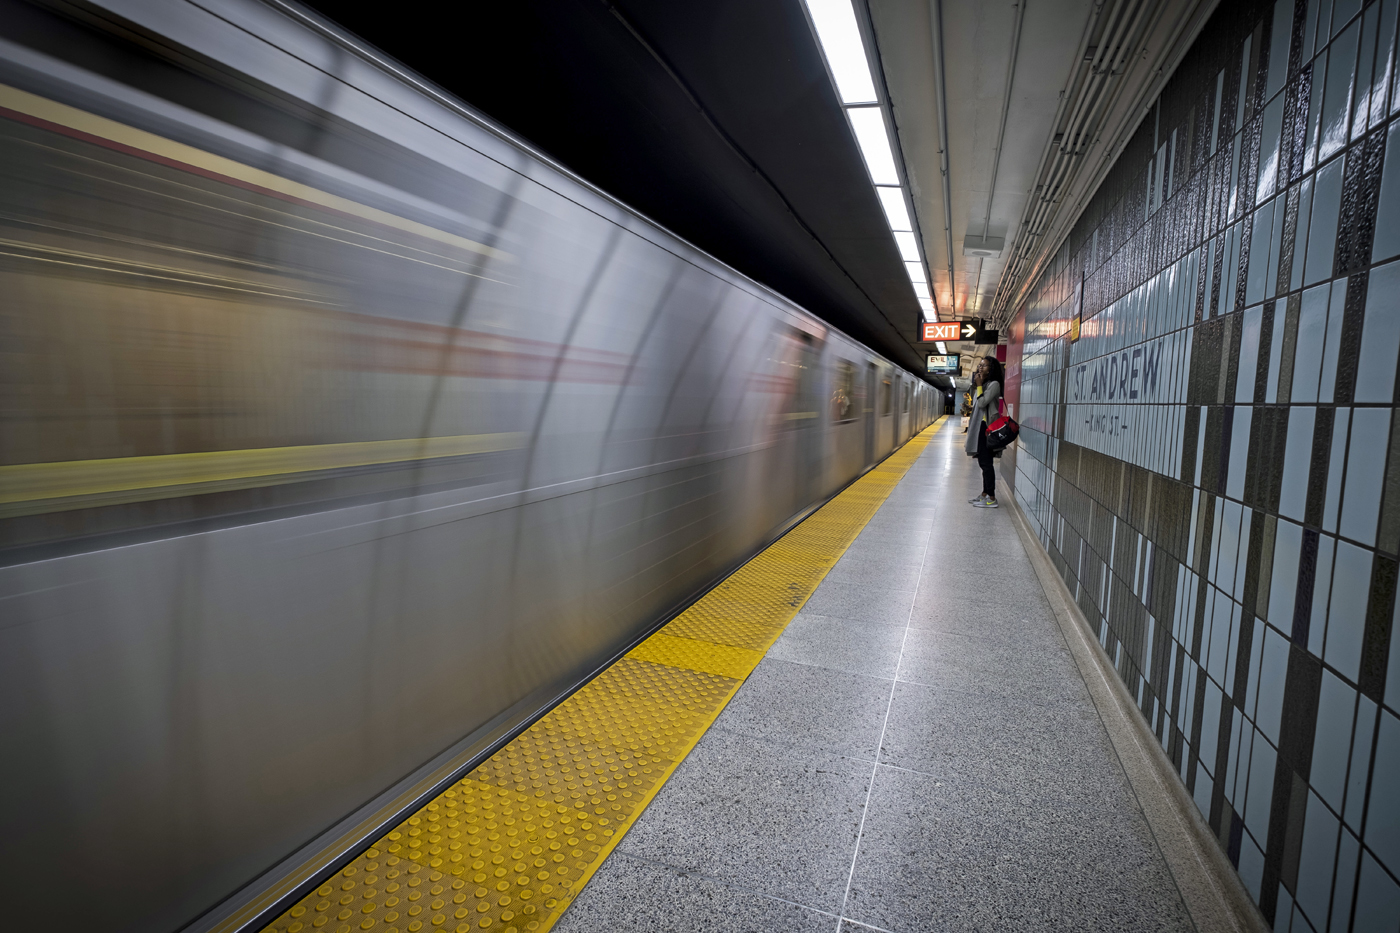 The TTC is trying to raise awareness that if people are contemplating suicide or just need to talk, help is a phone call away at 416-408-4357 or 416-408-HELP. (Evan Mitsui/CBC)